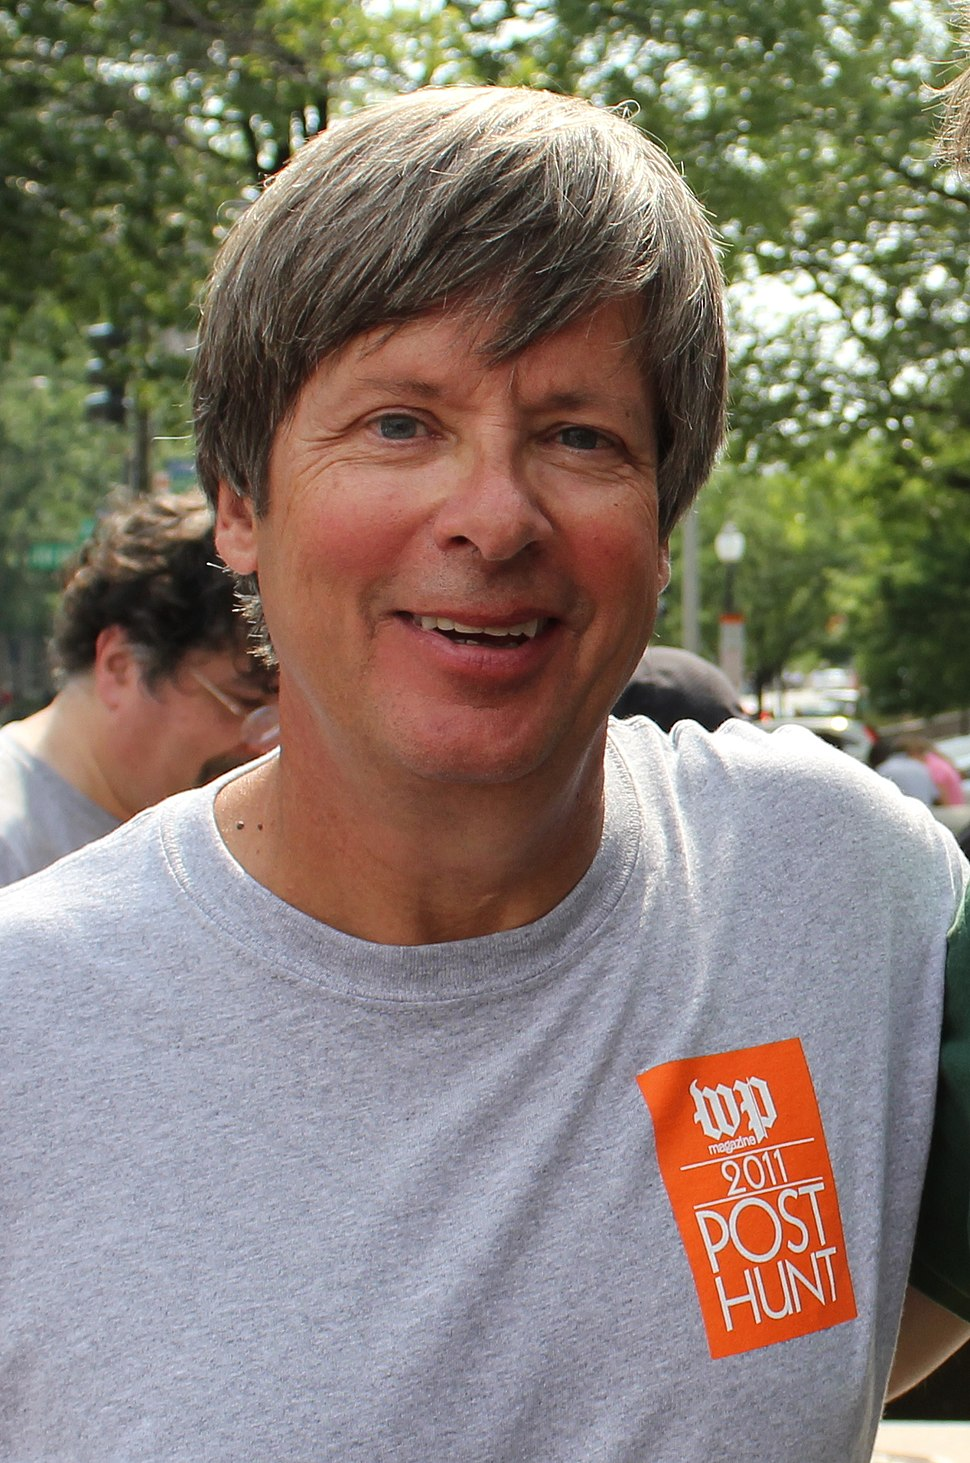 Barry at the 2011 Washington Post Hunt